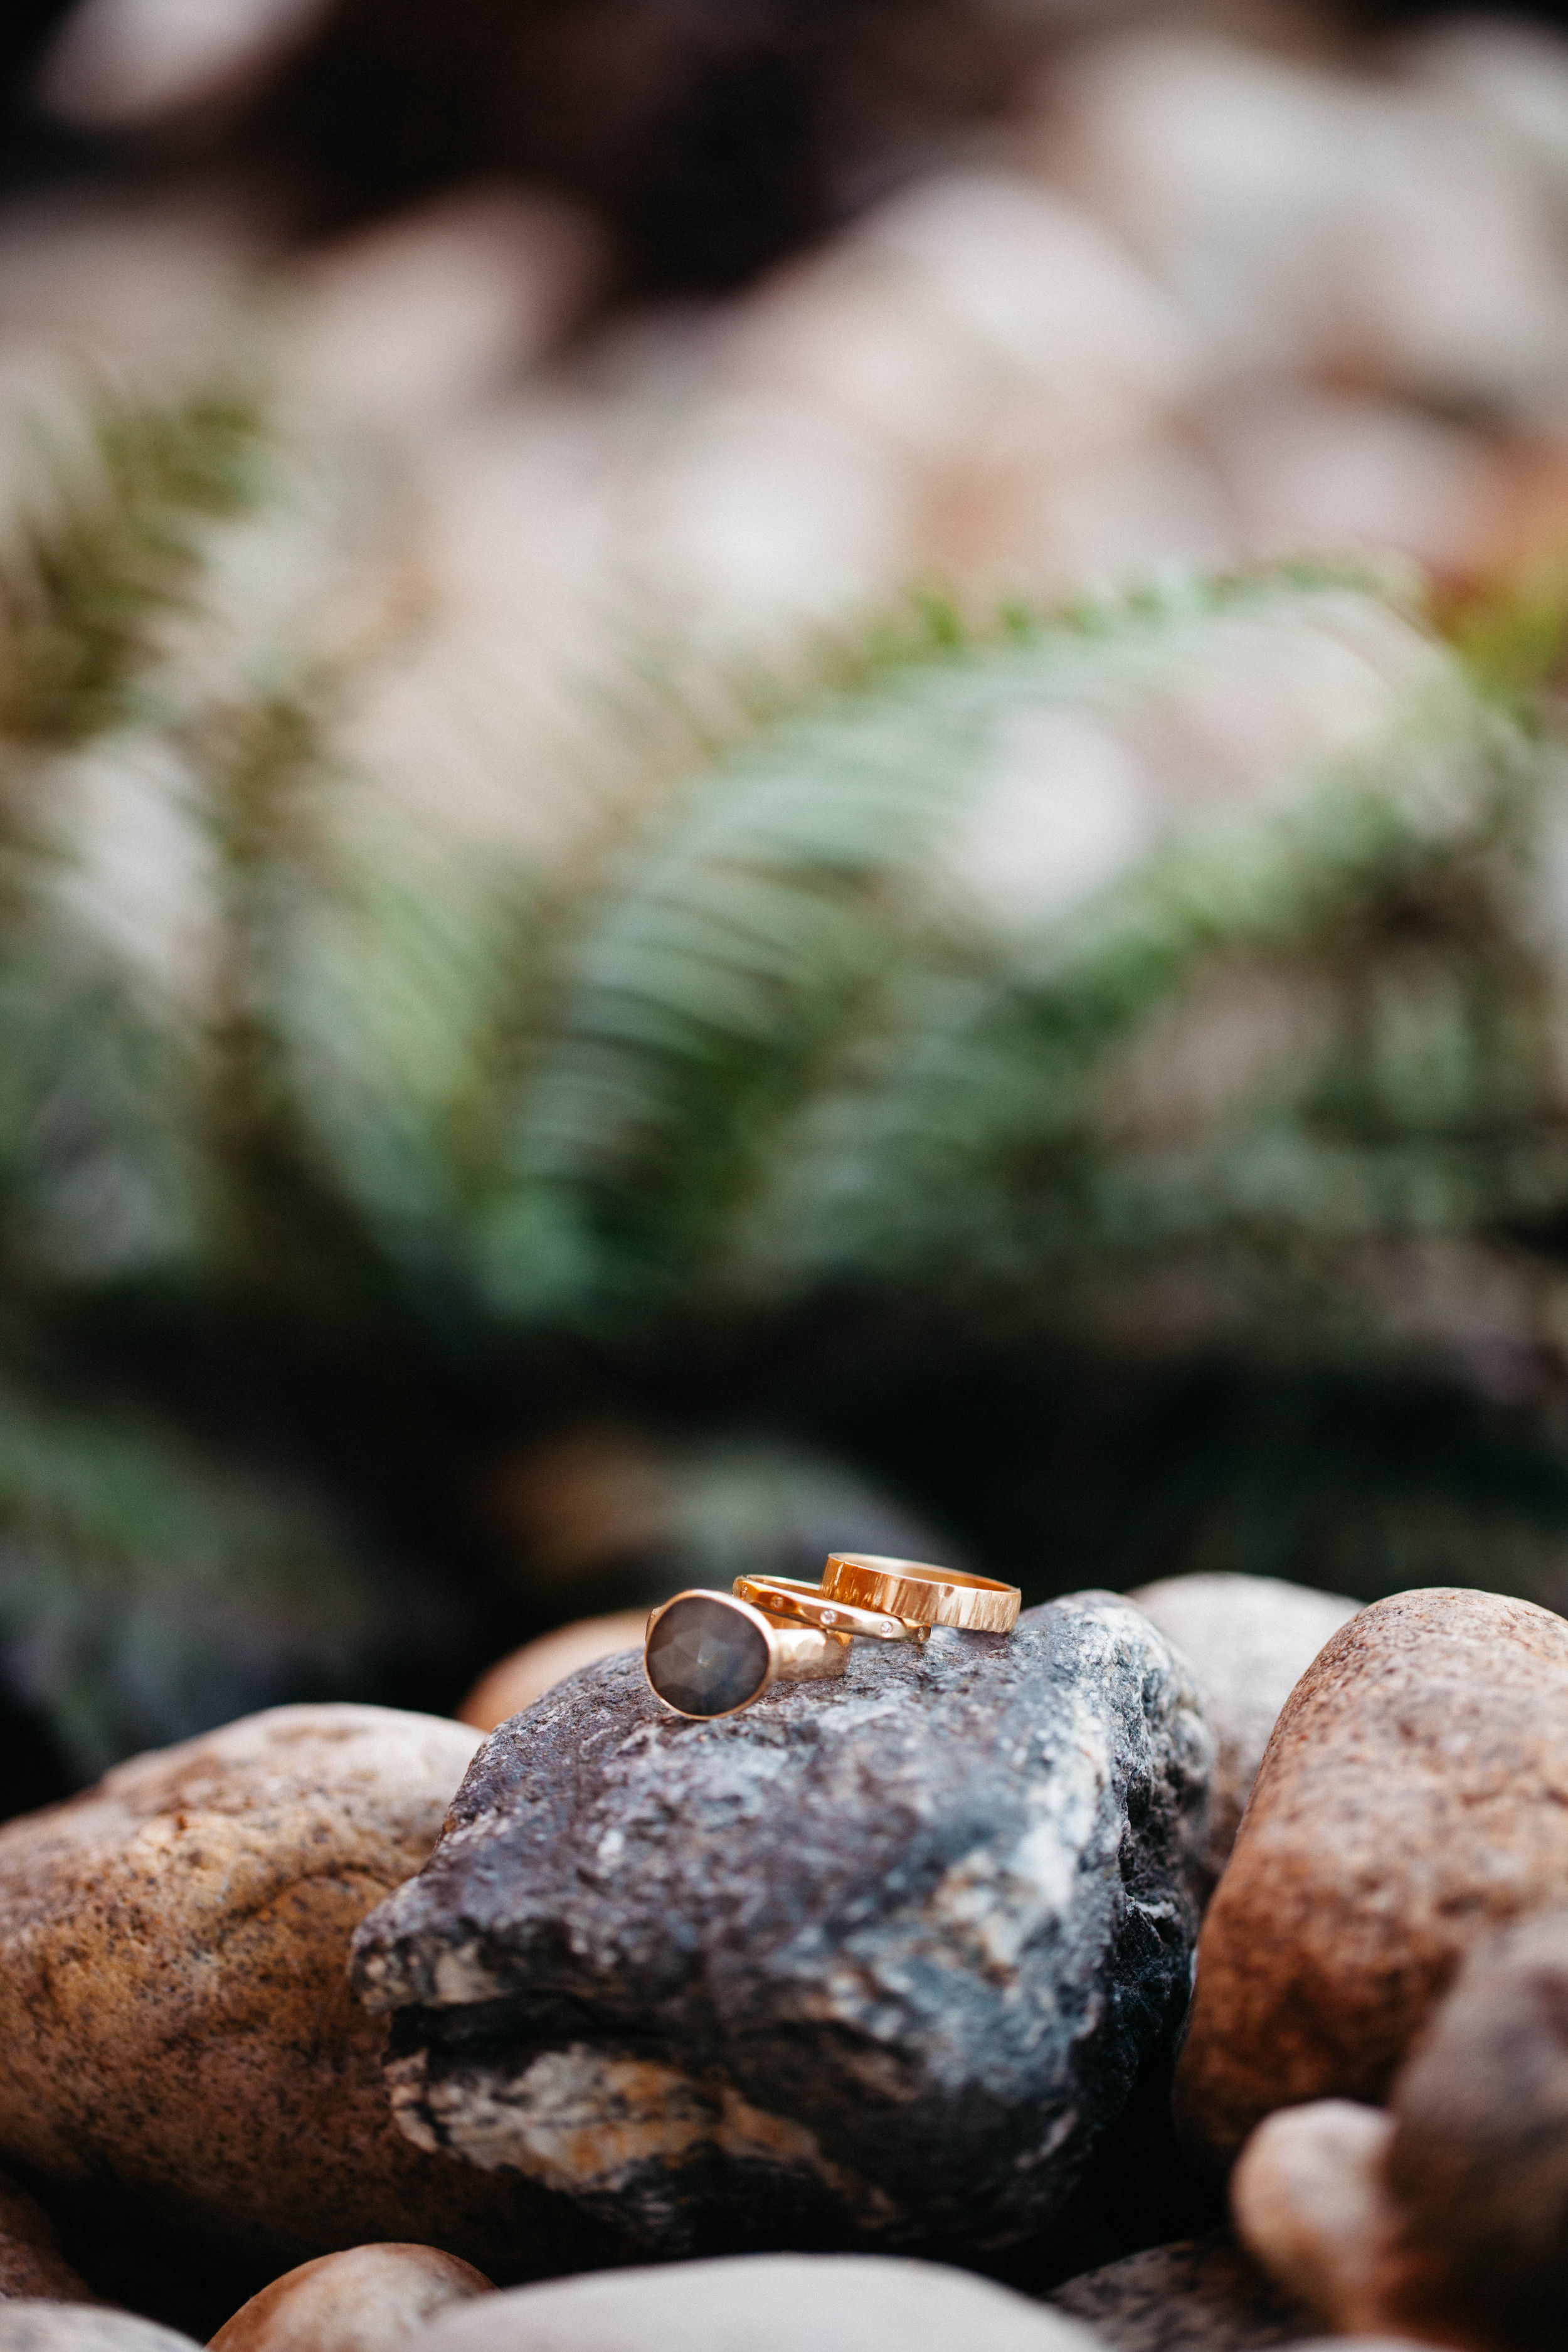 Rings by Leslie & Jared:   18k yellow gold; 4mm textured flat band, 2.5mm faceted half round band with flush set diamonds, and organic shap  ed rose cut sapphire on a hammered band.   Photo by   Tim Kressin